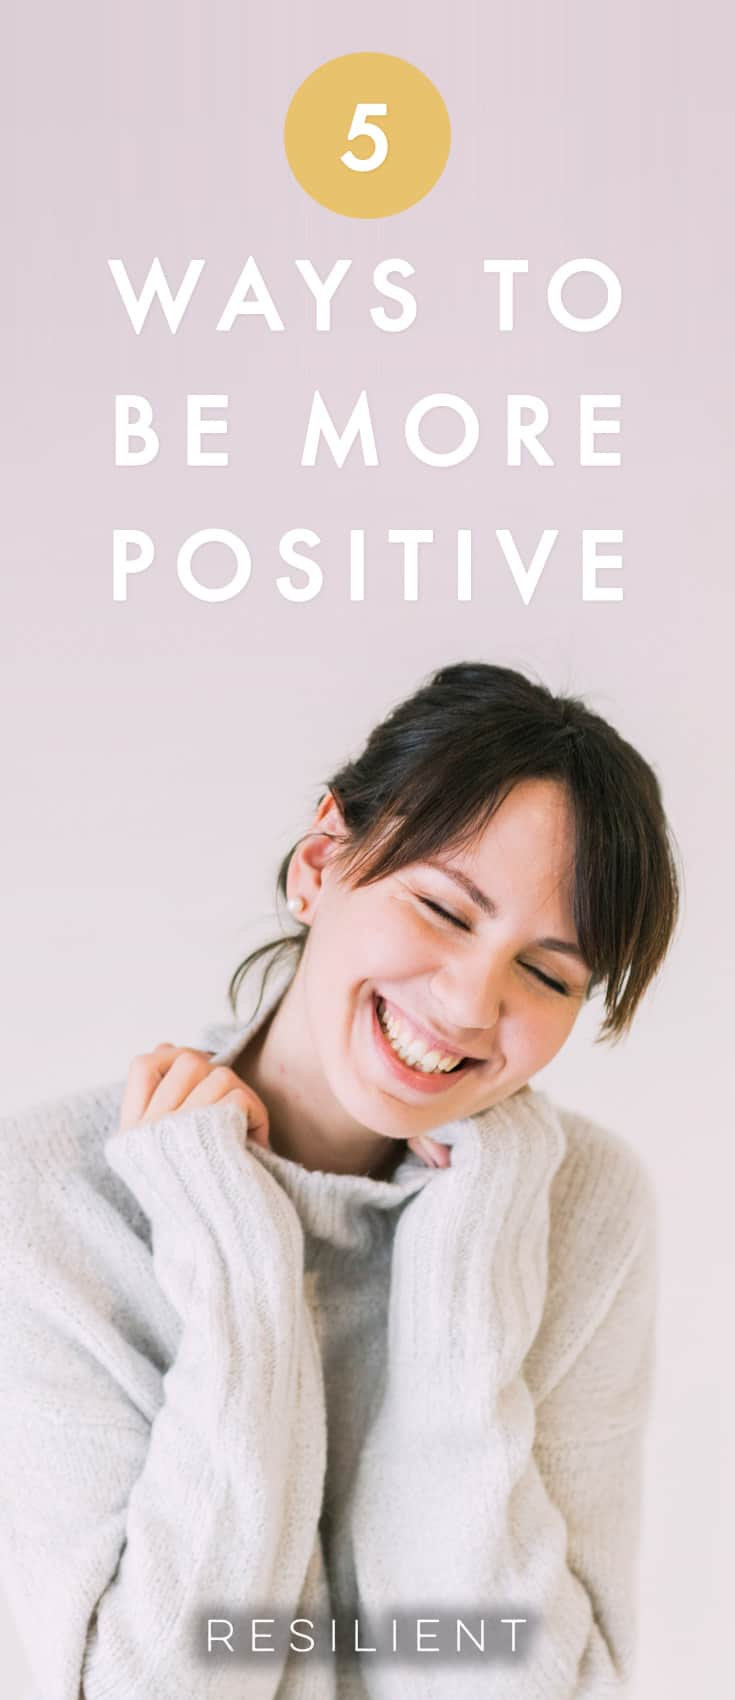 Being positive is easier than you think! With just a few small mindset changes, you can be happier and be more positive regardless of your current situation. Here are 5 ways to be more positive in your everyday life.